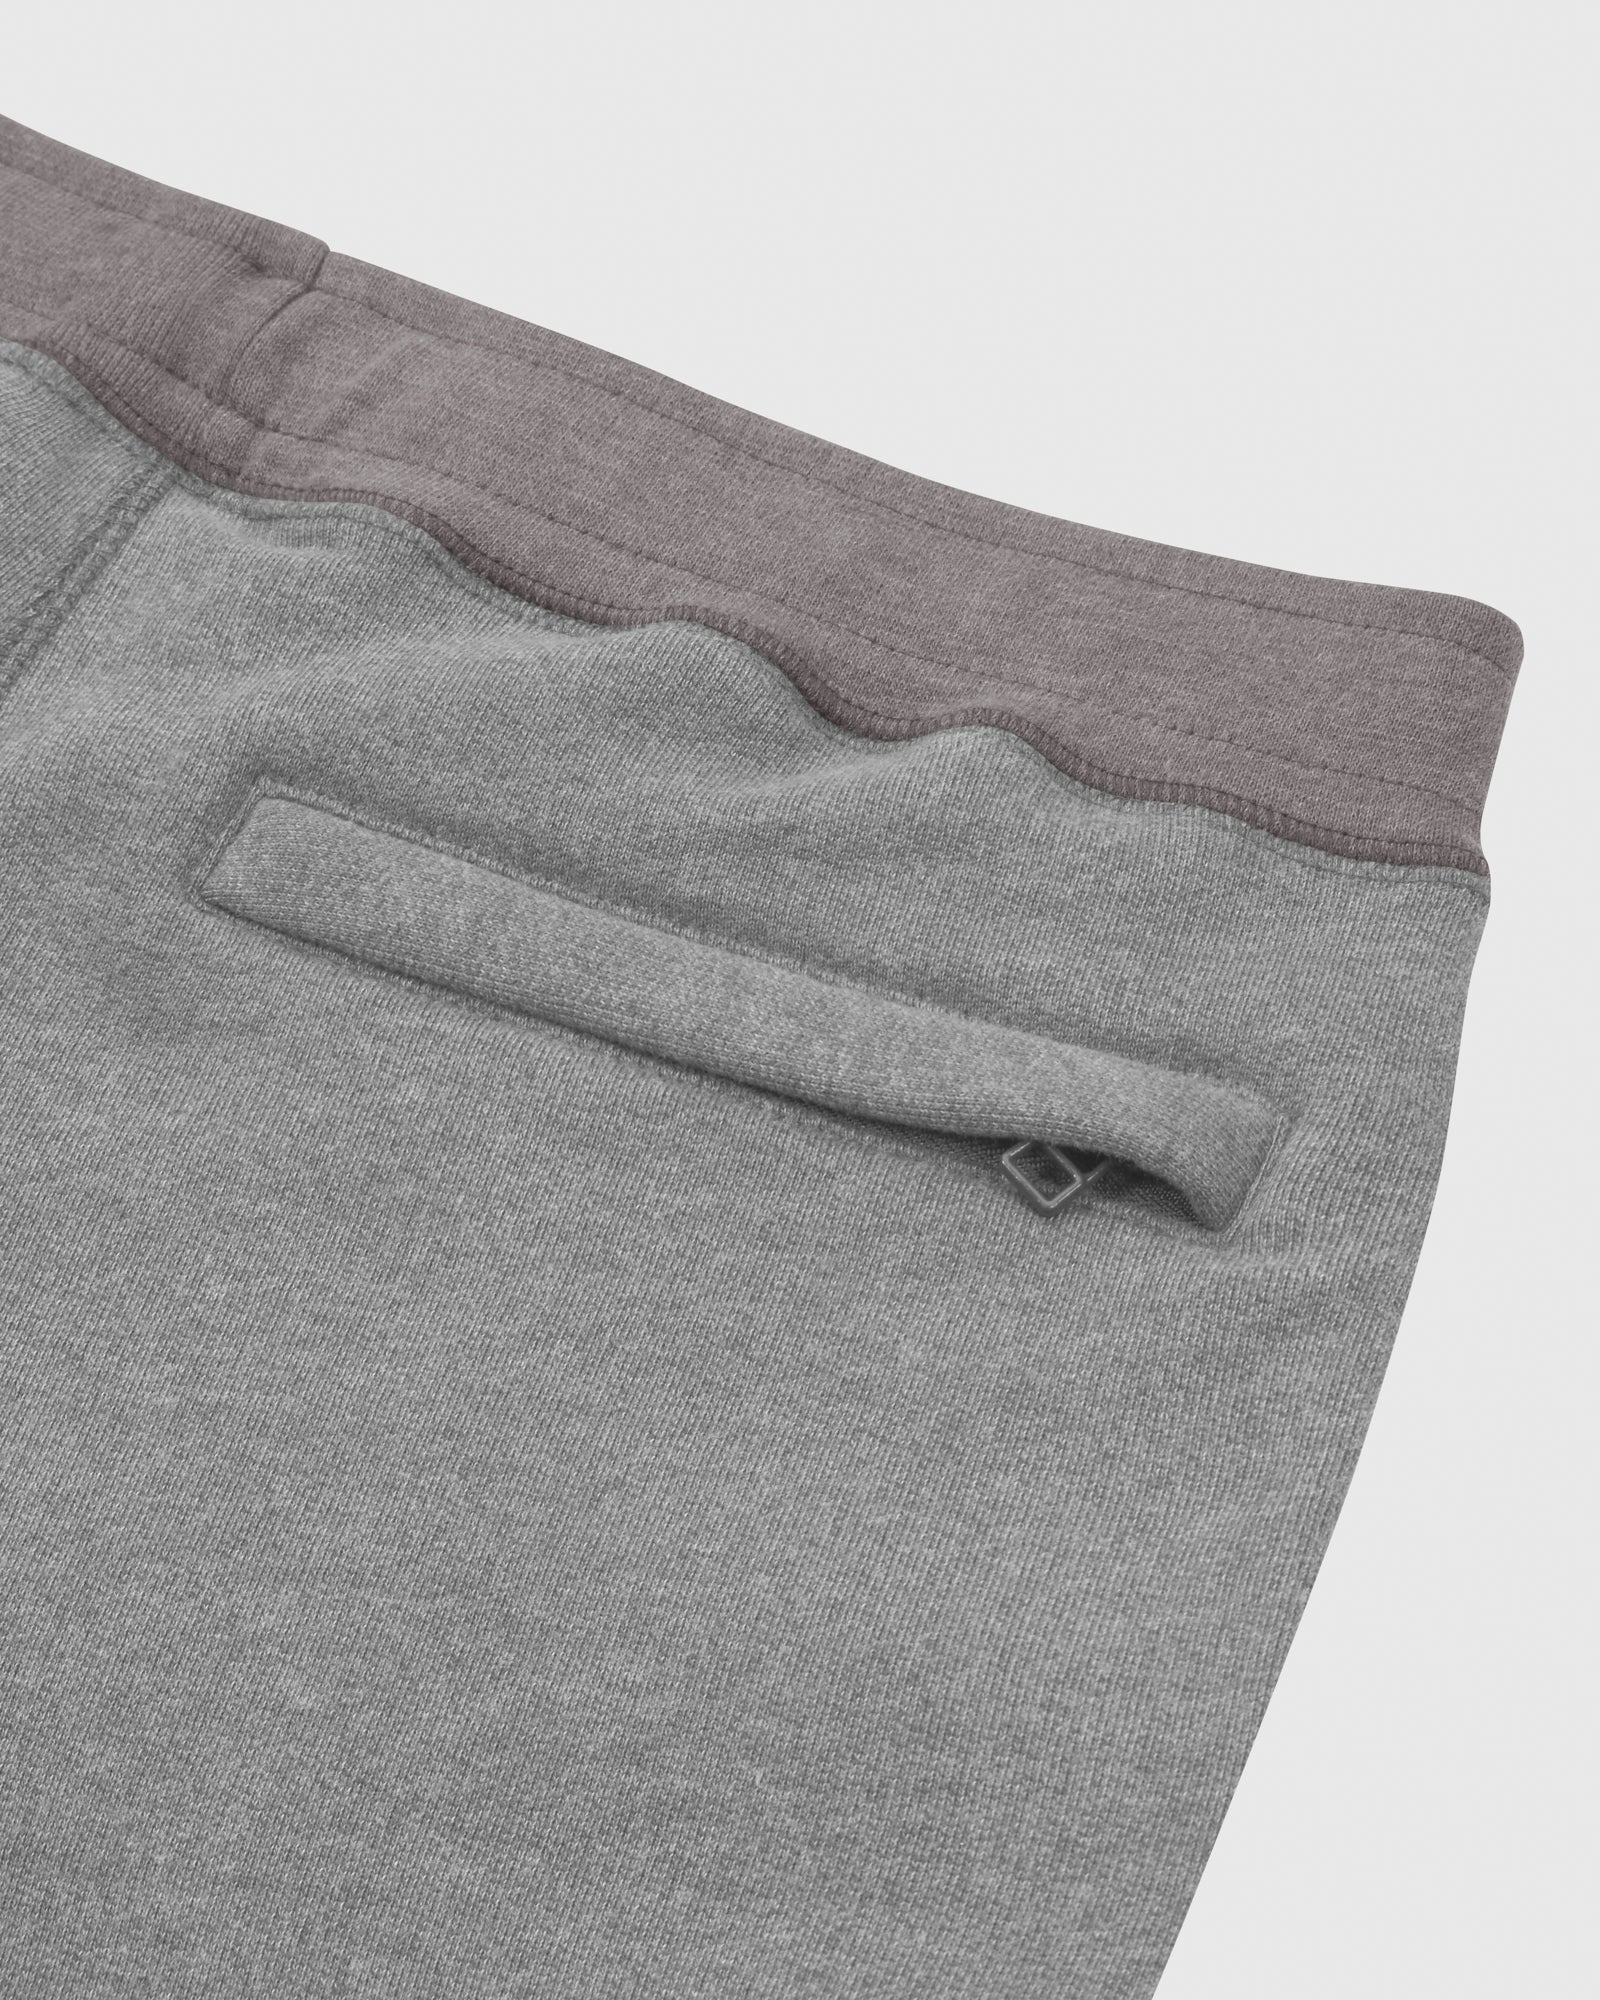 OVO FRENCH TERRY SWEATPANT - HEATHER ASH GREY